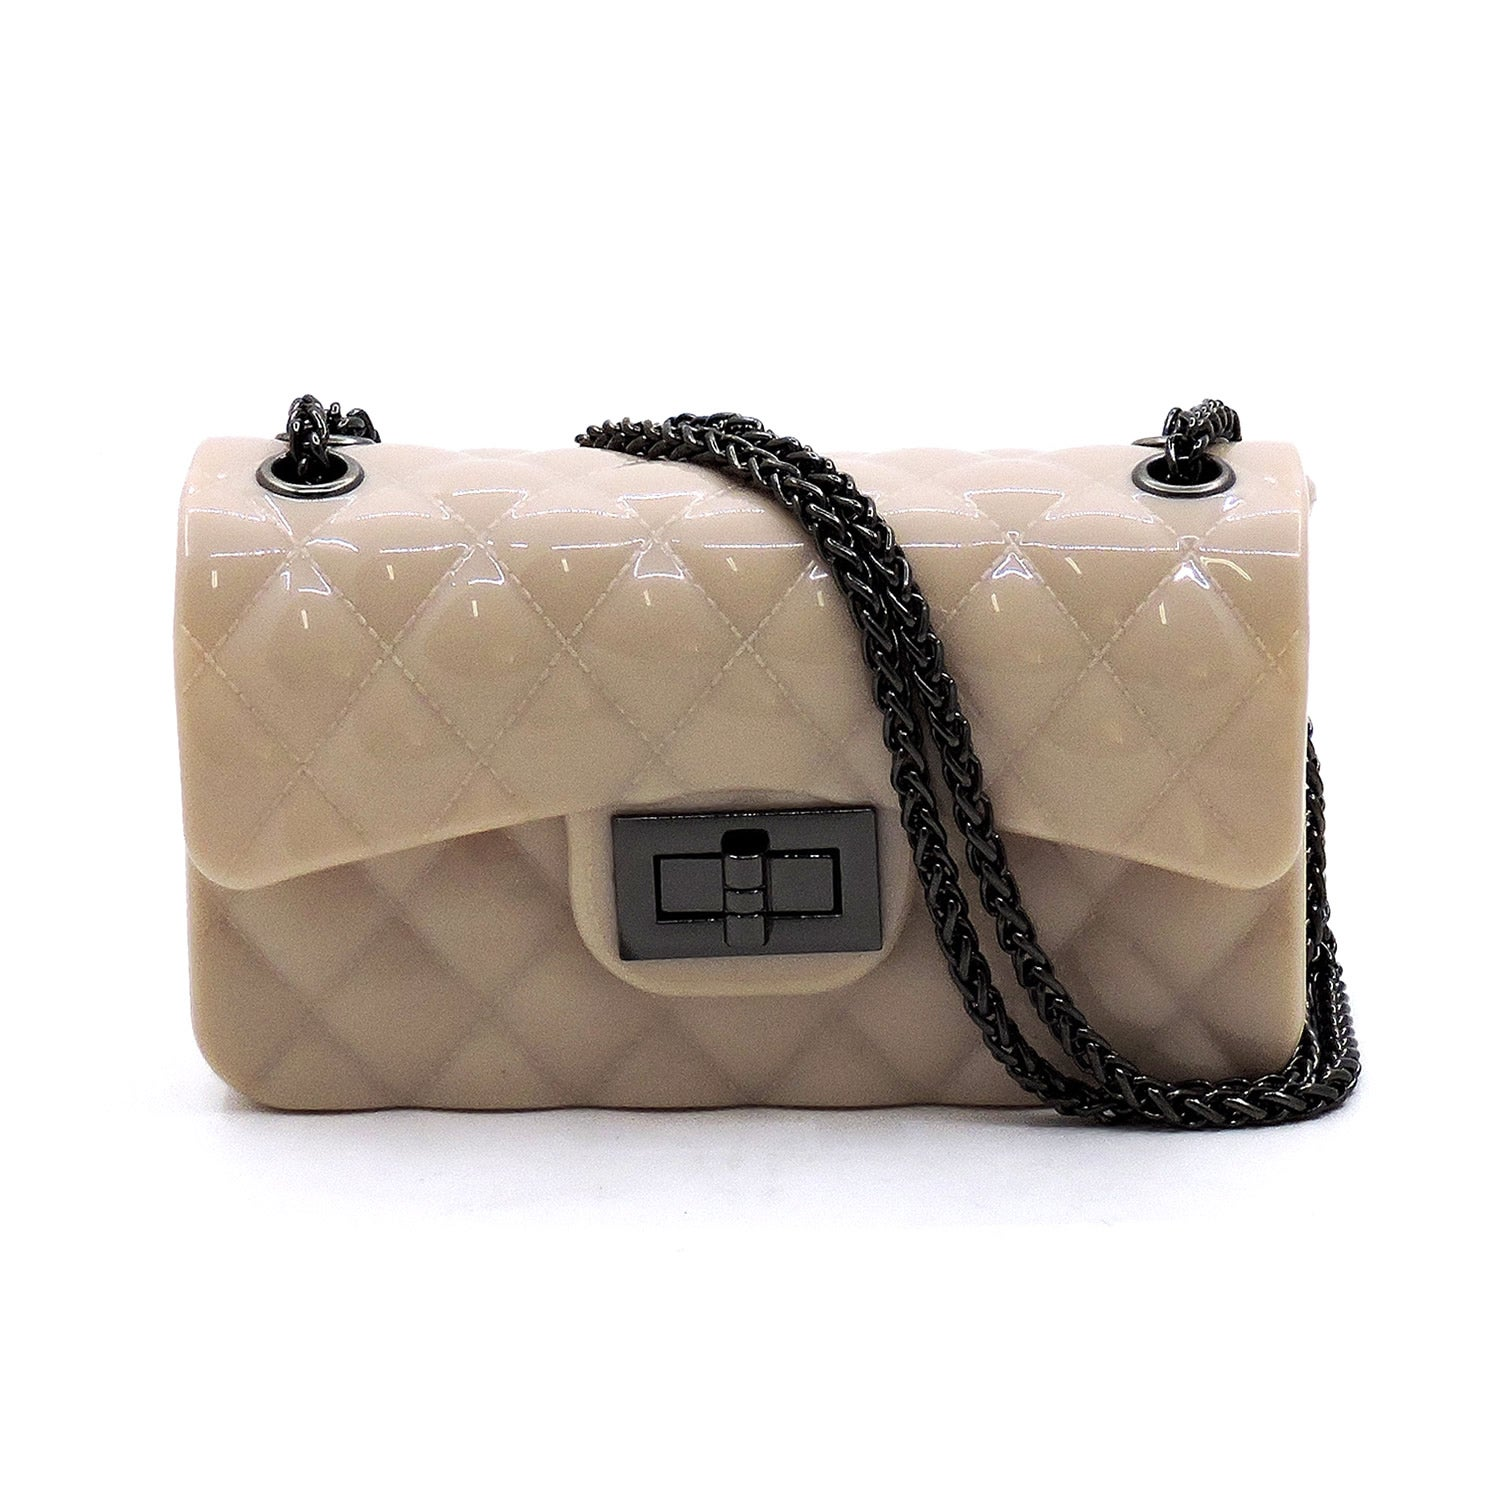 Image of Classic Jelly Bag {Org. $35}